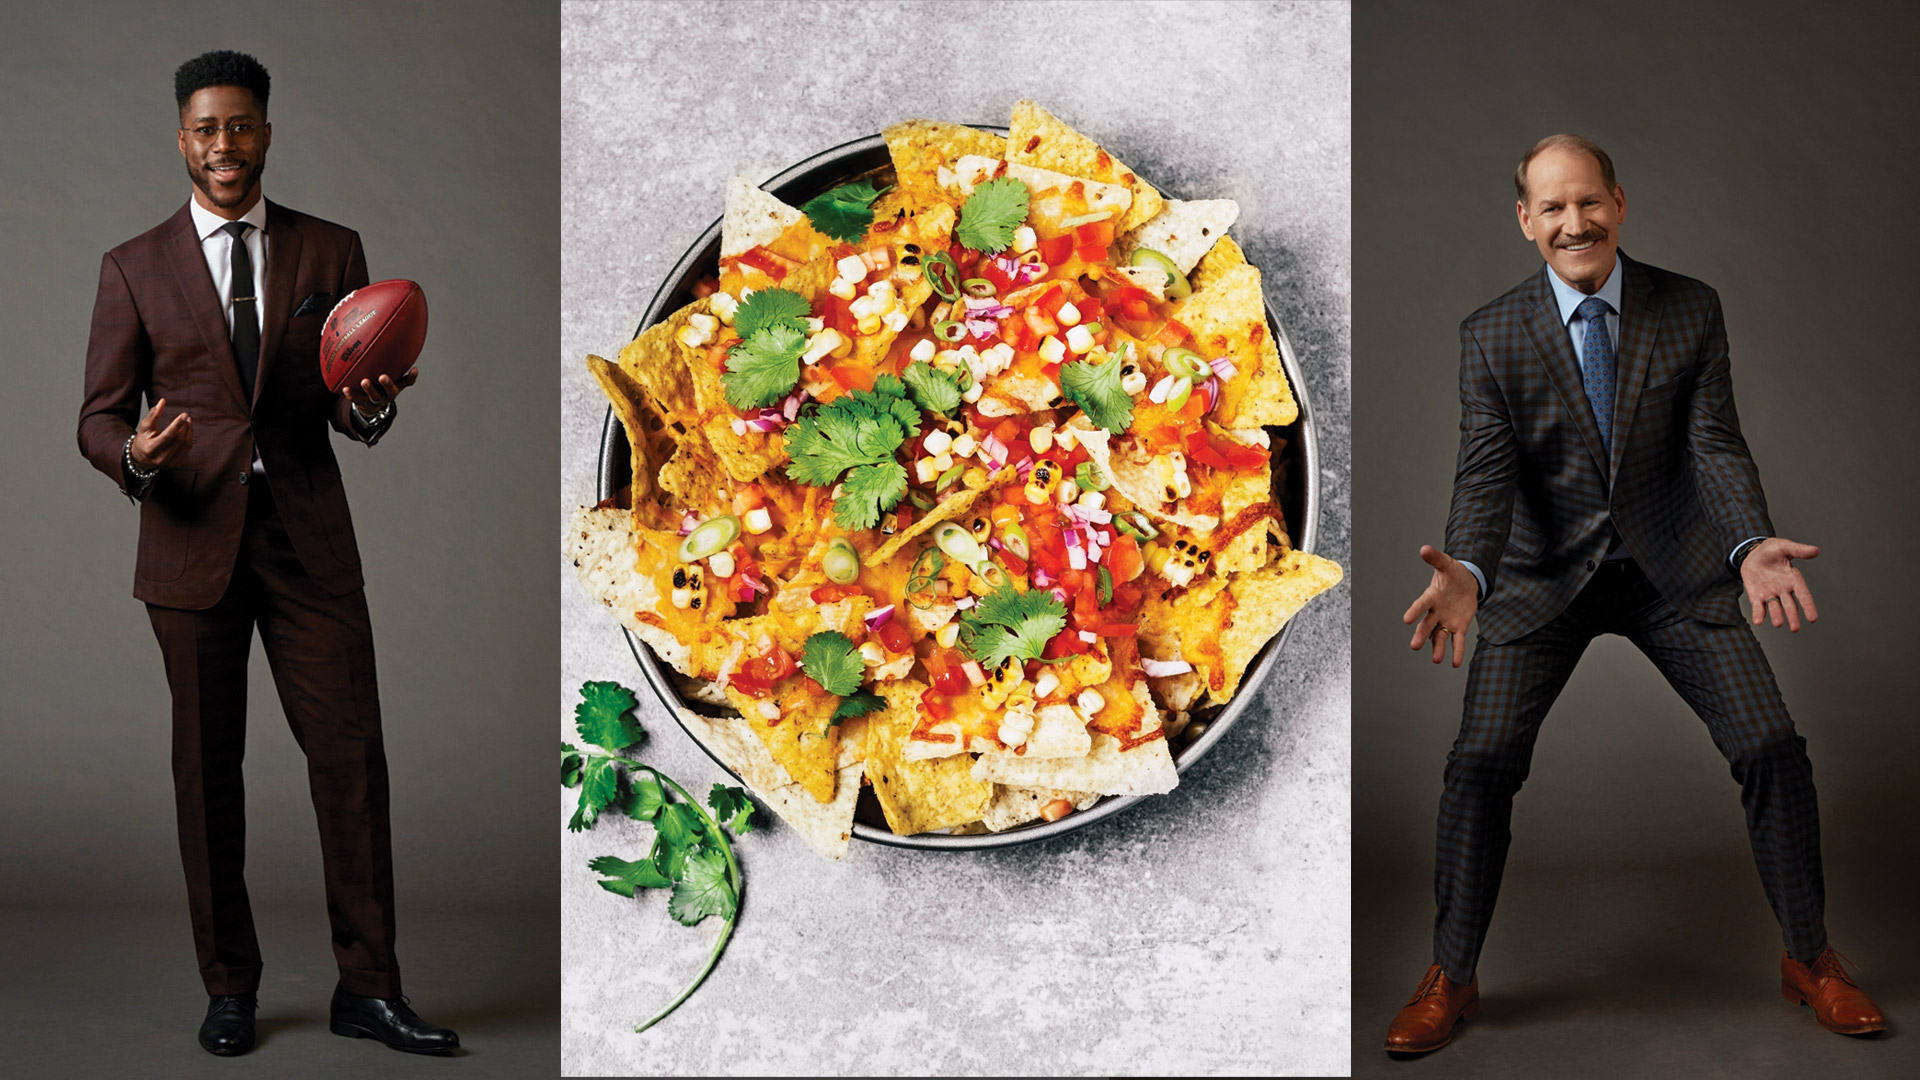 Nate Burleson and Bill Cowher agree. Fully loaded nachos are the way to go.